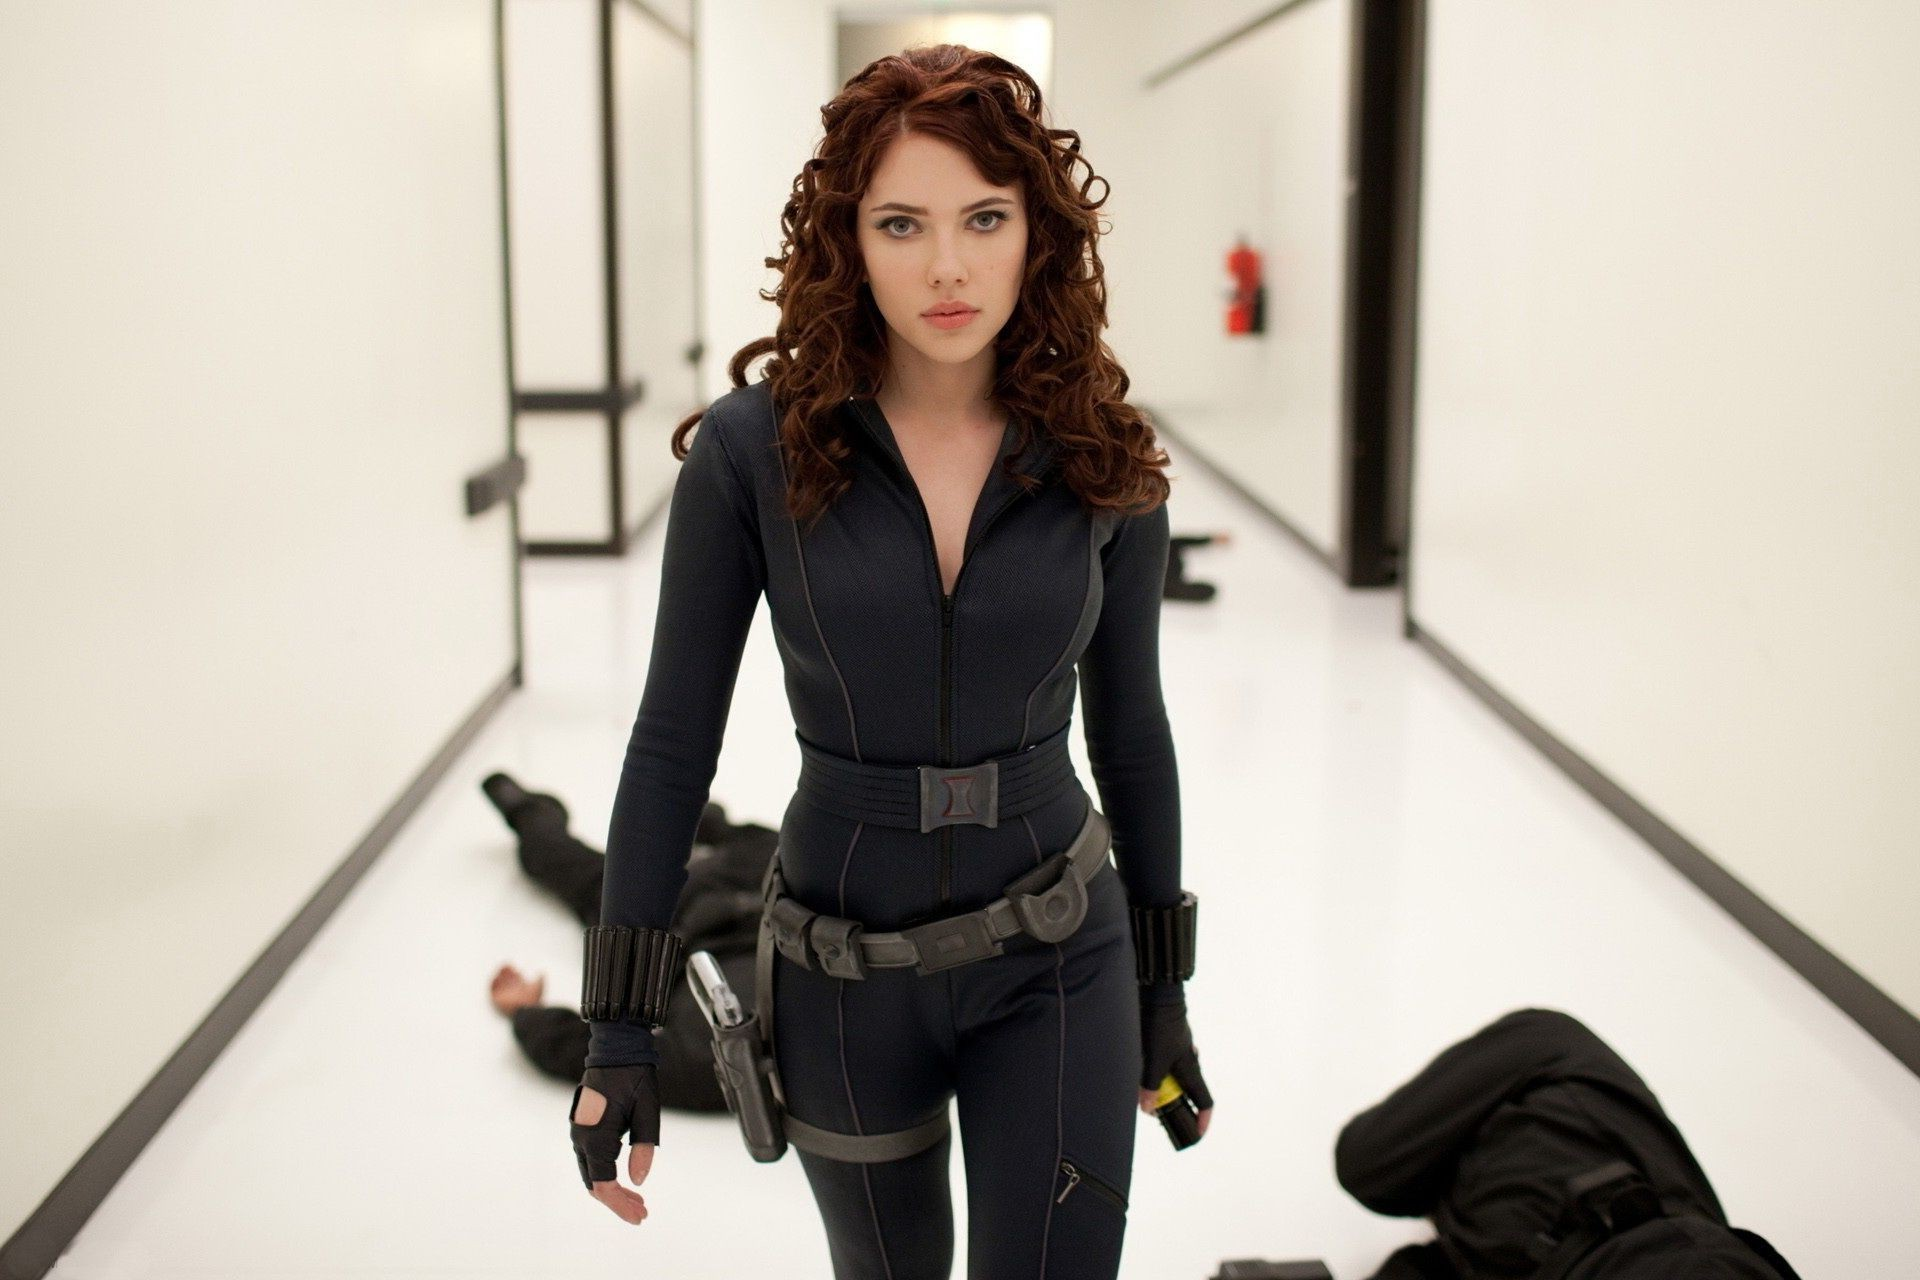 The movie iron man scarlett johansson